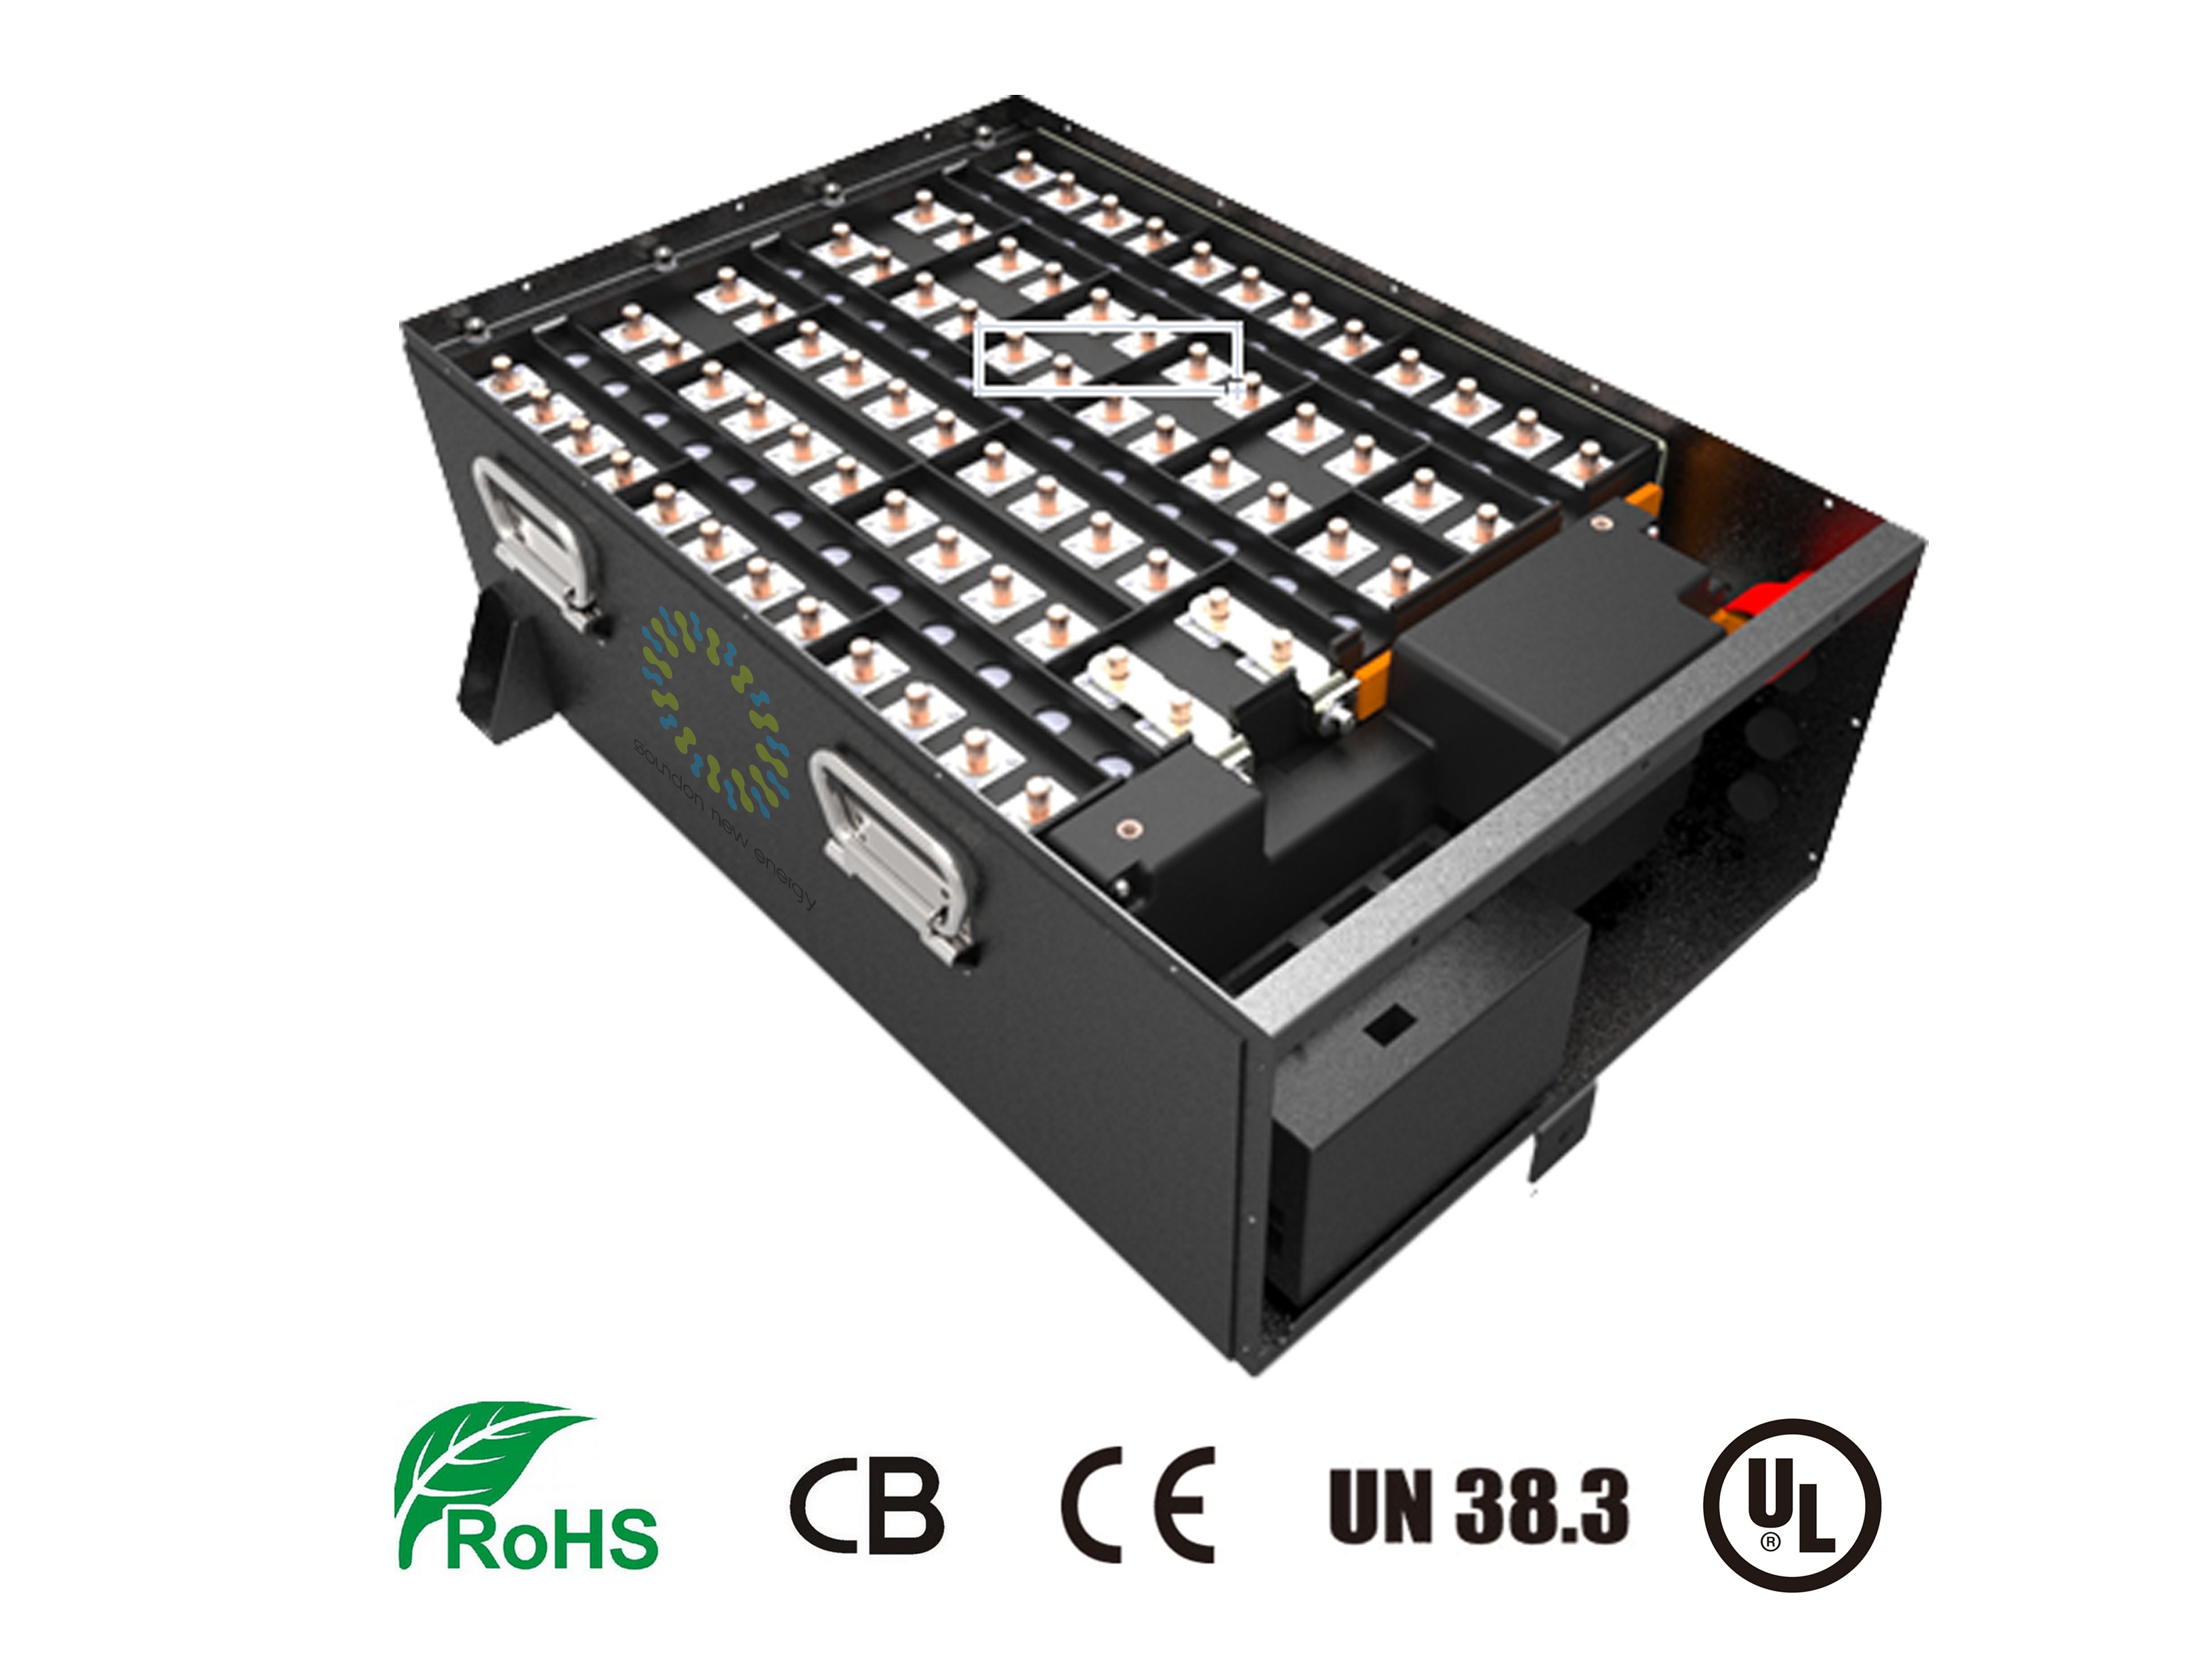 Lithium Ion Car Battery >> 72v Lithium Ion Car Battery With Bms Lithium Car Battery